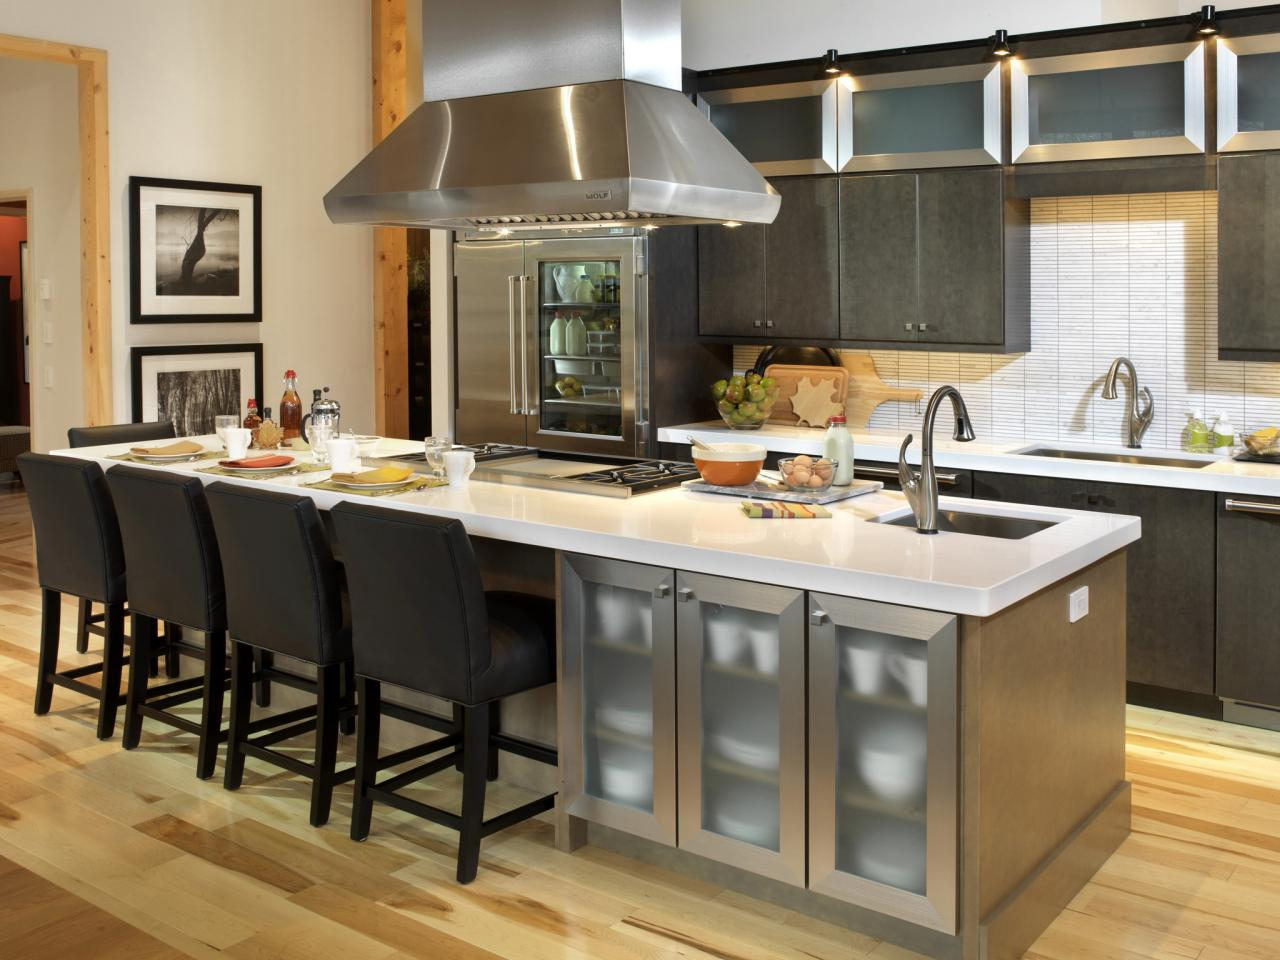 Upgrade your kitchen to be a cool hang out spot with - Small kitchen islands with seating and storage ...